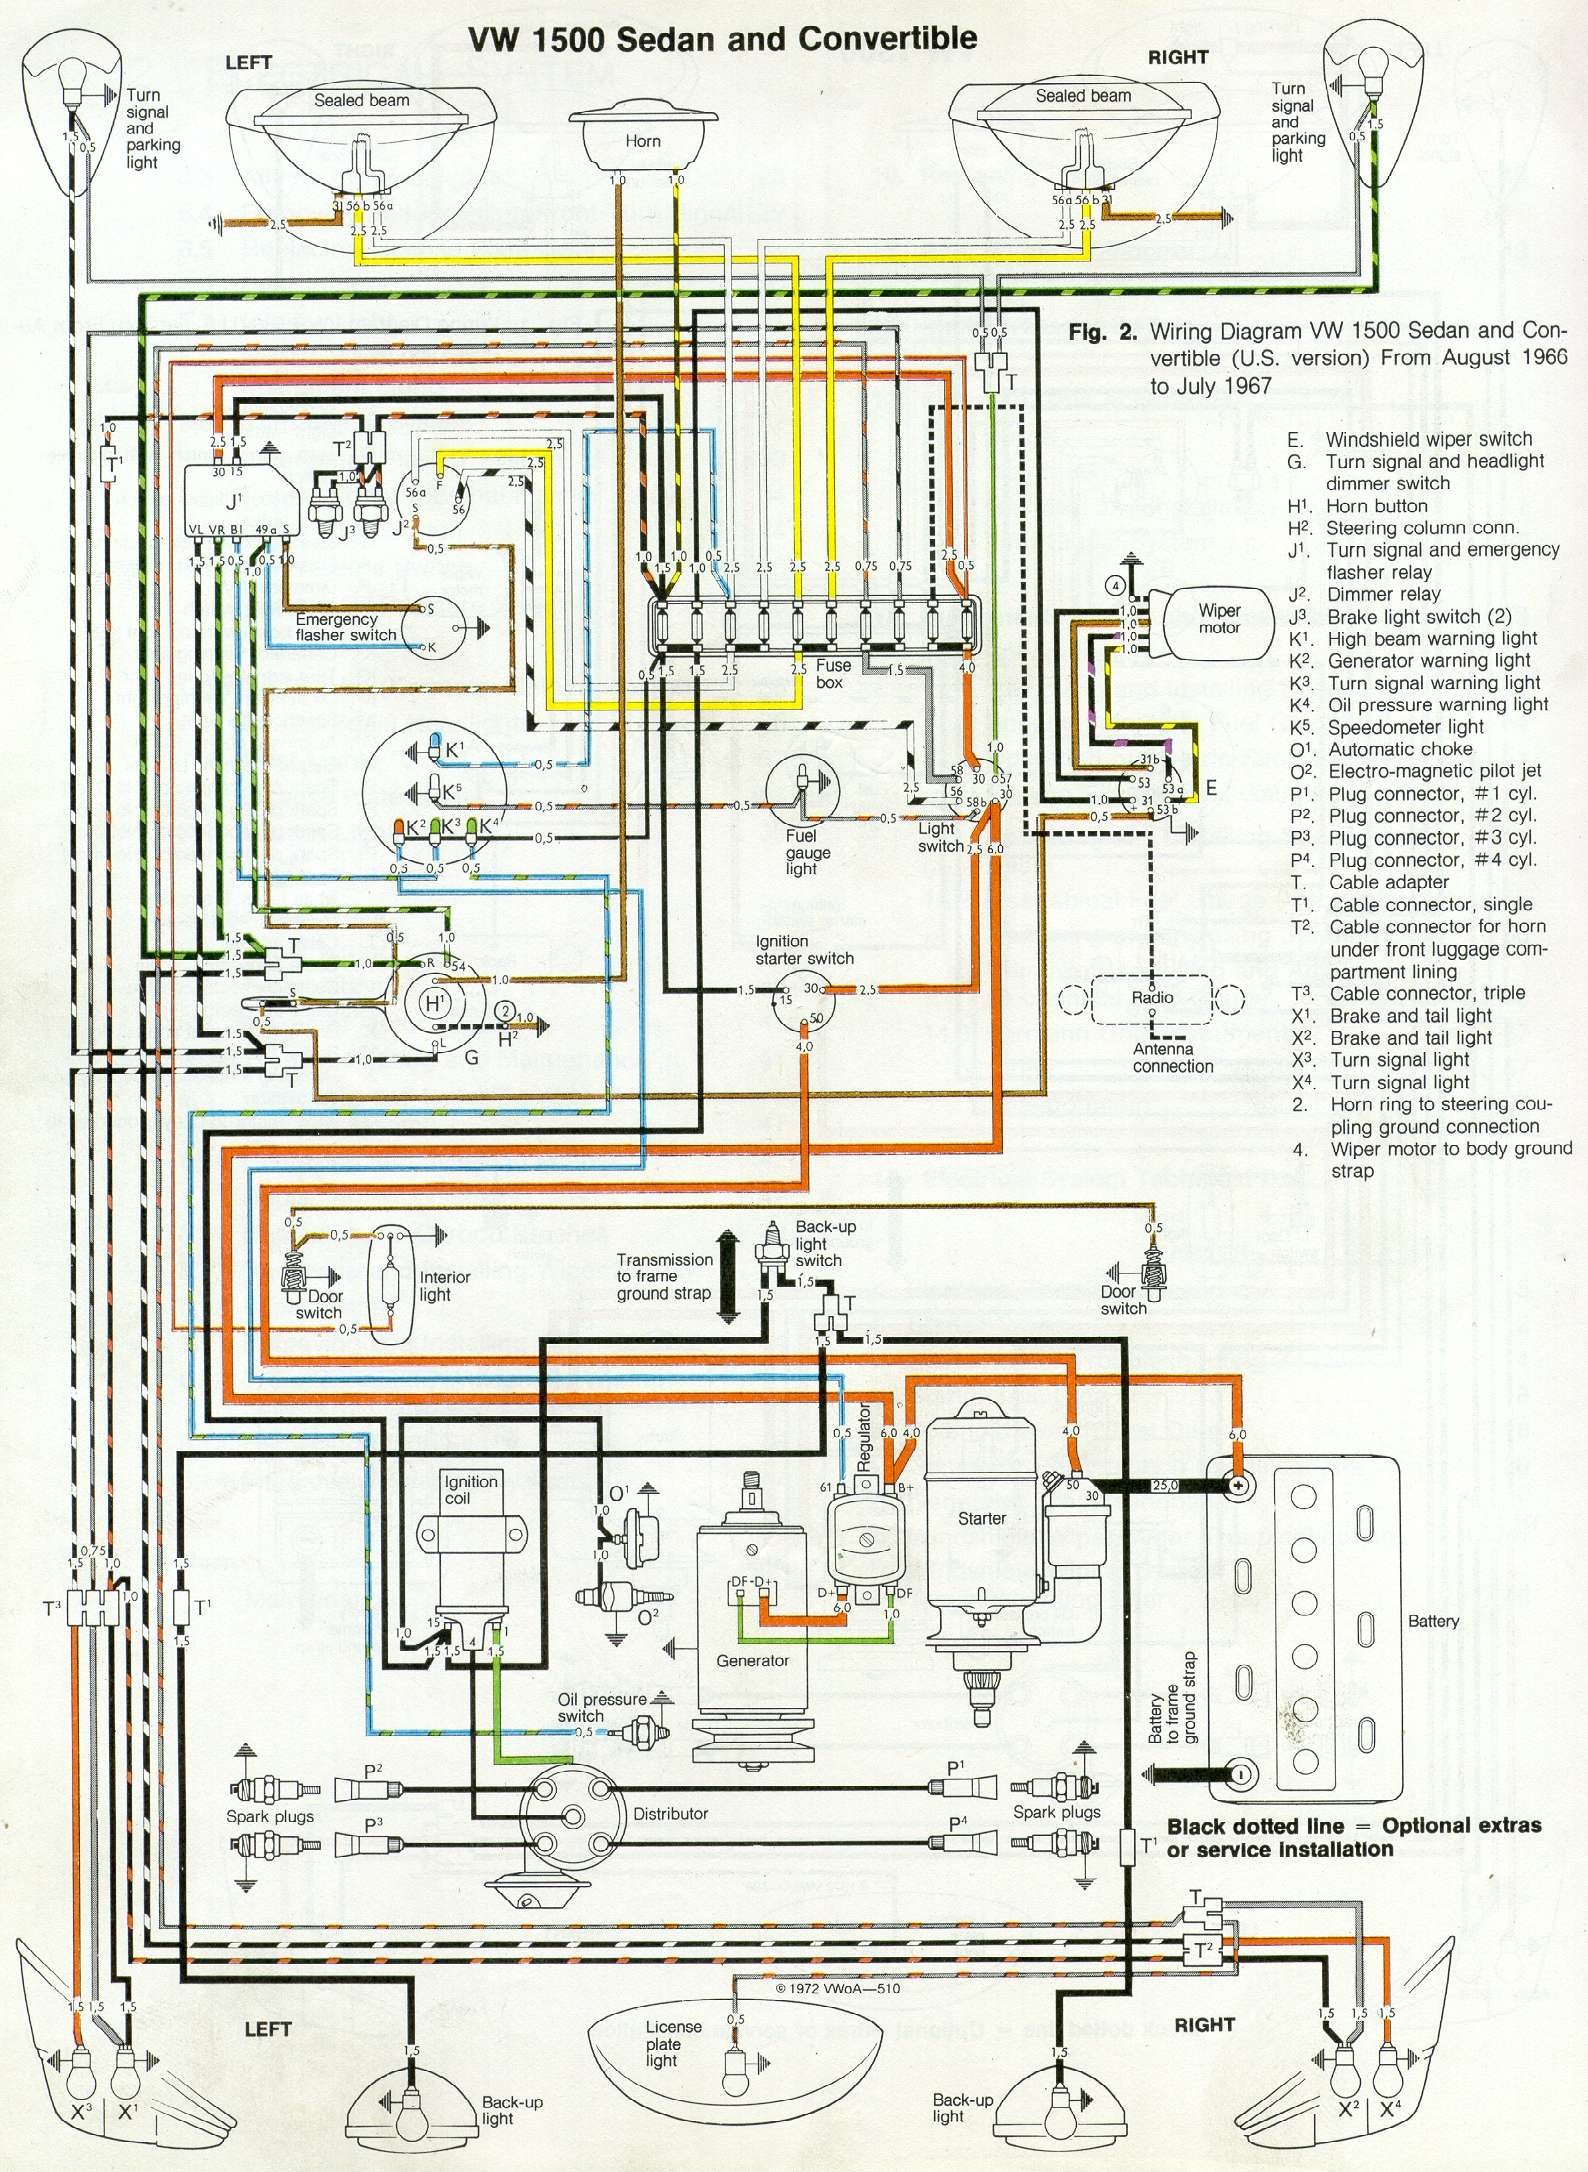 VW bug_1967 other diagrams vw beach buggy wiring diagram at n-0.co